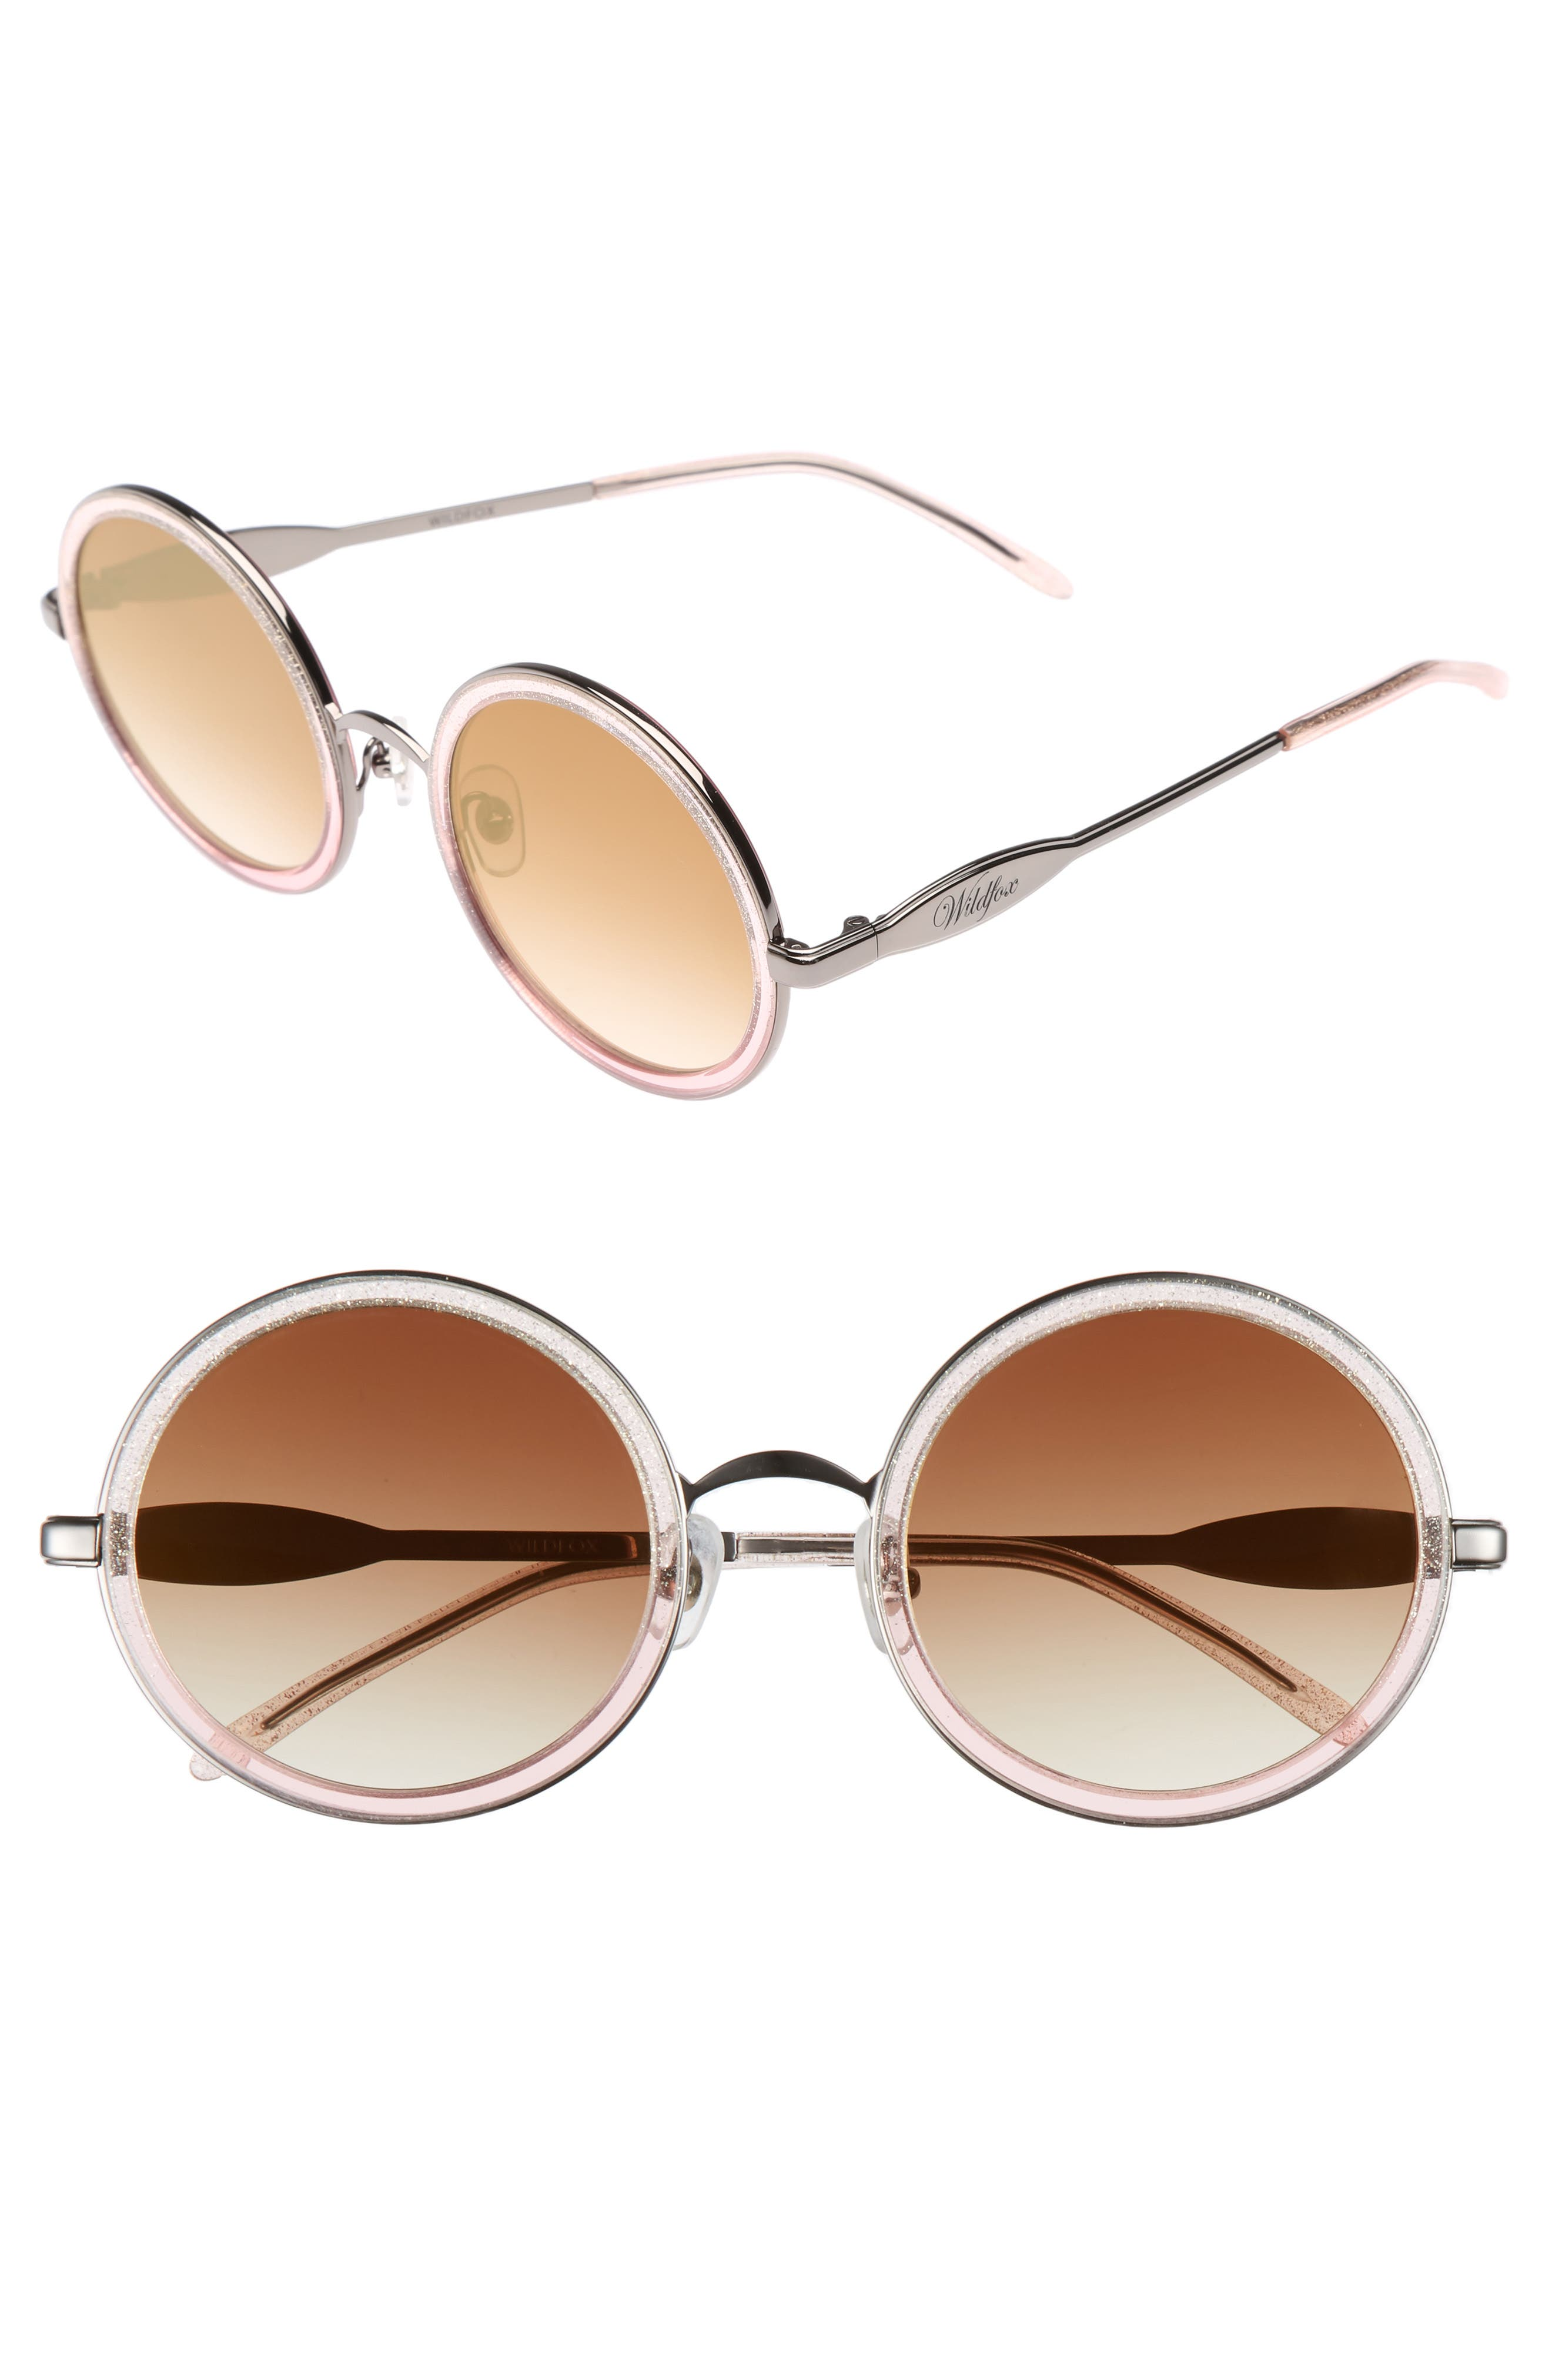 Wildfox Ryder Zero 49mm Flat Round Sunglasses